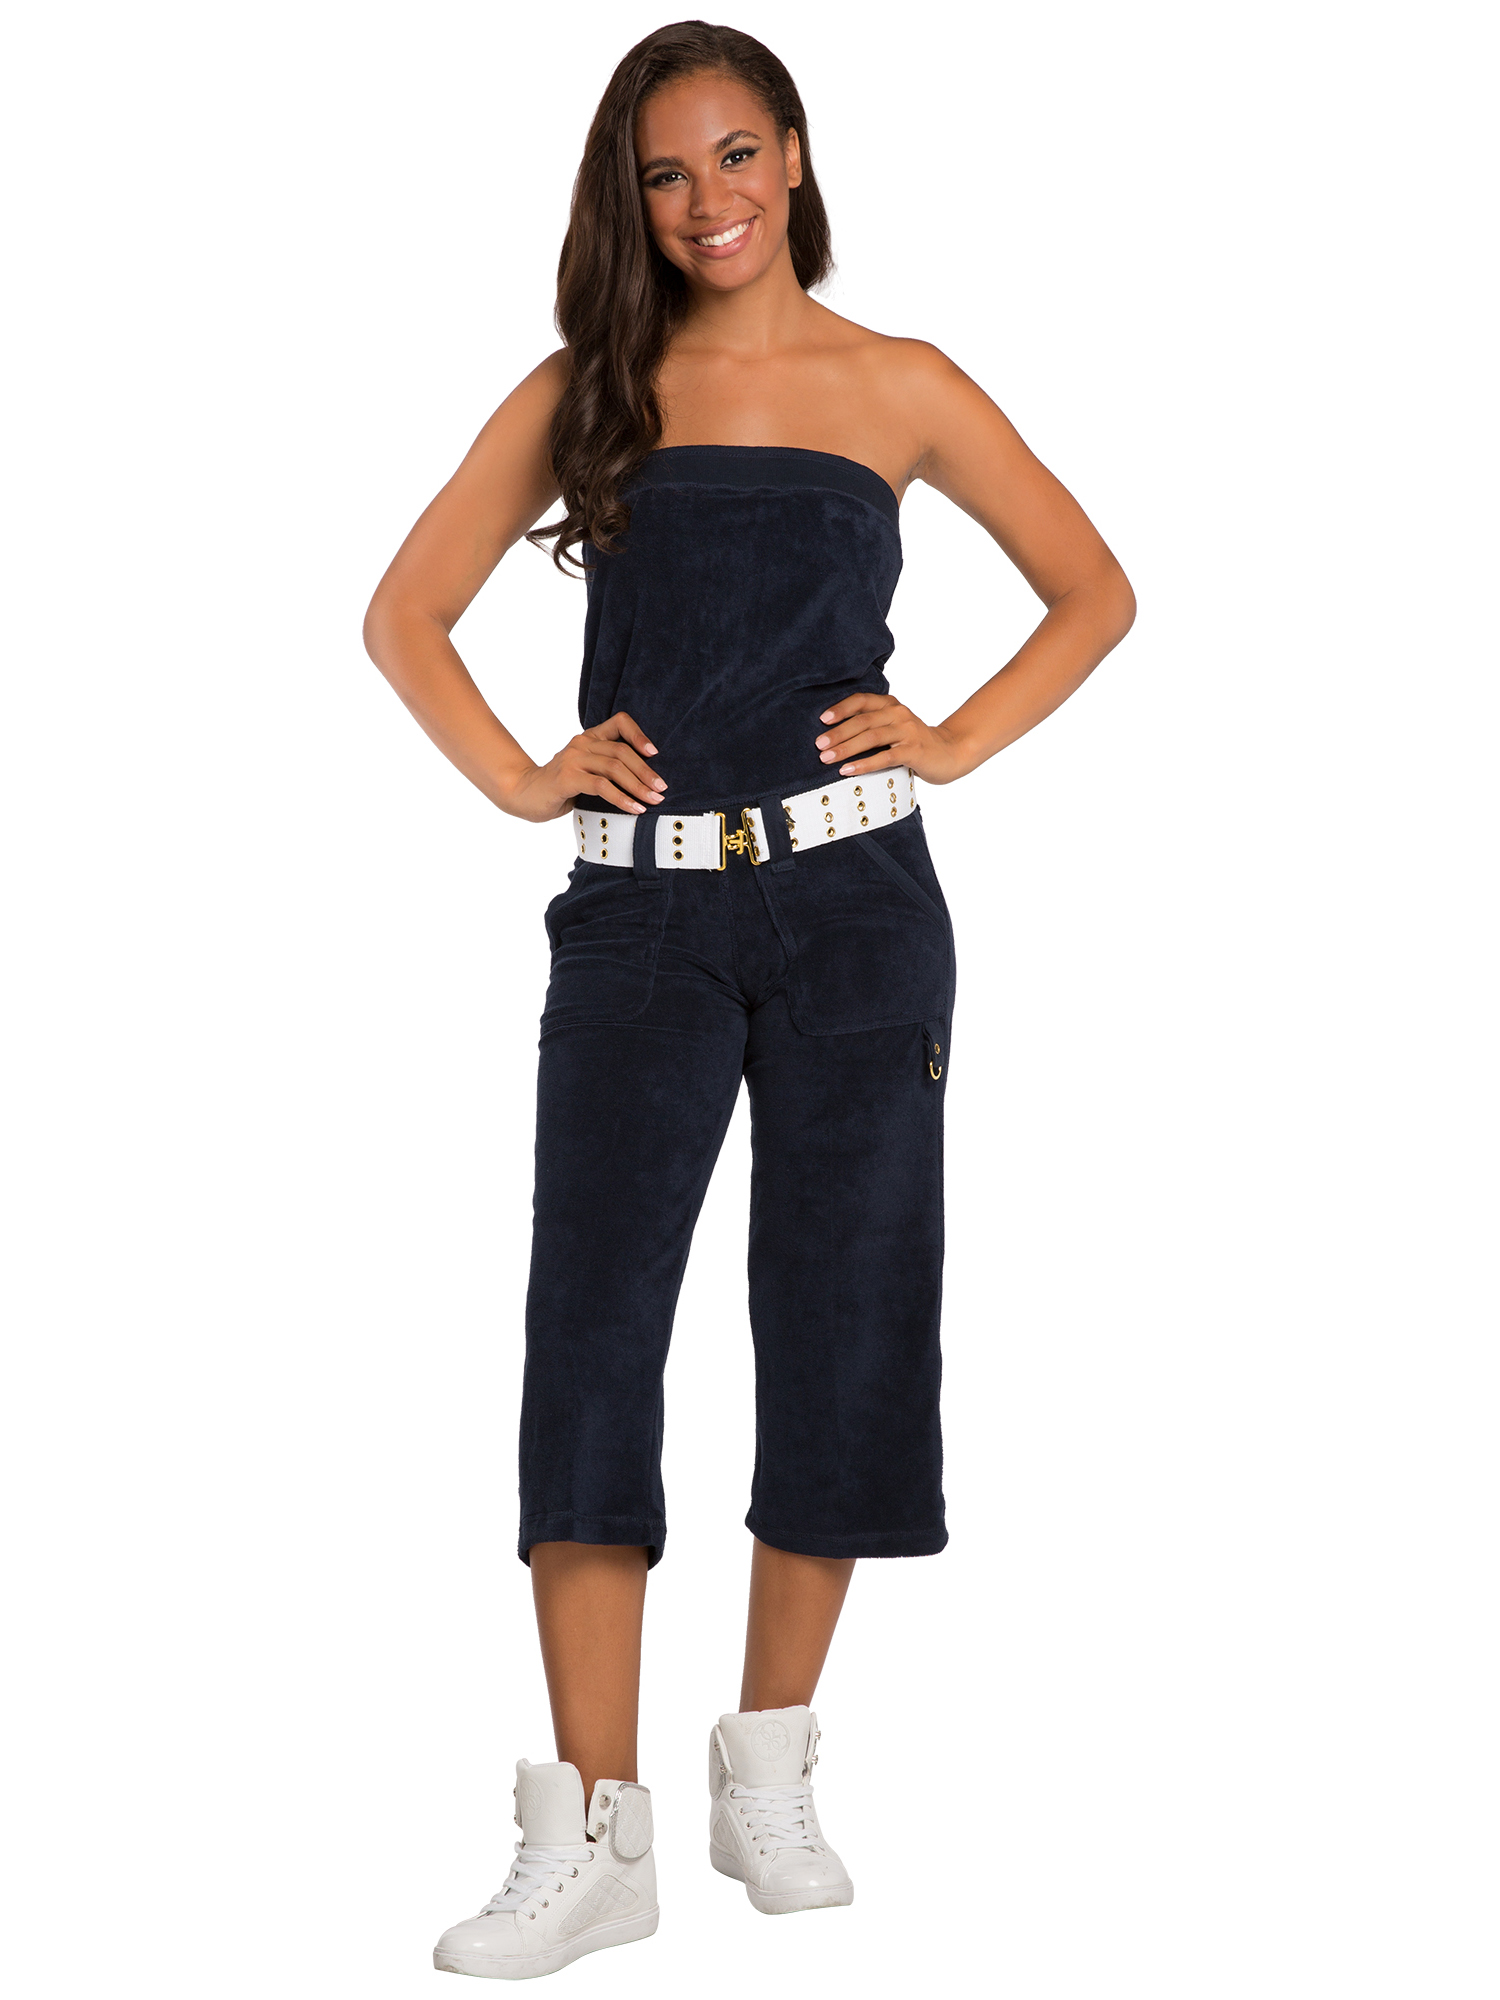 944ceb8fda Sweet Vibes - Sweet Vibes Juniors Olive Stretch Terry Cloth Tube Jumpsuit  With Belt - Walmart.com